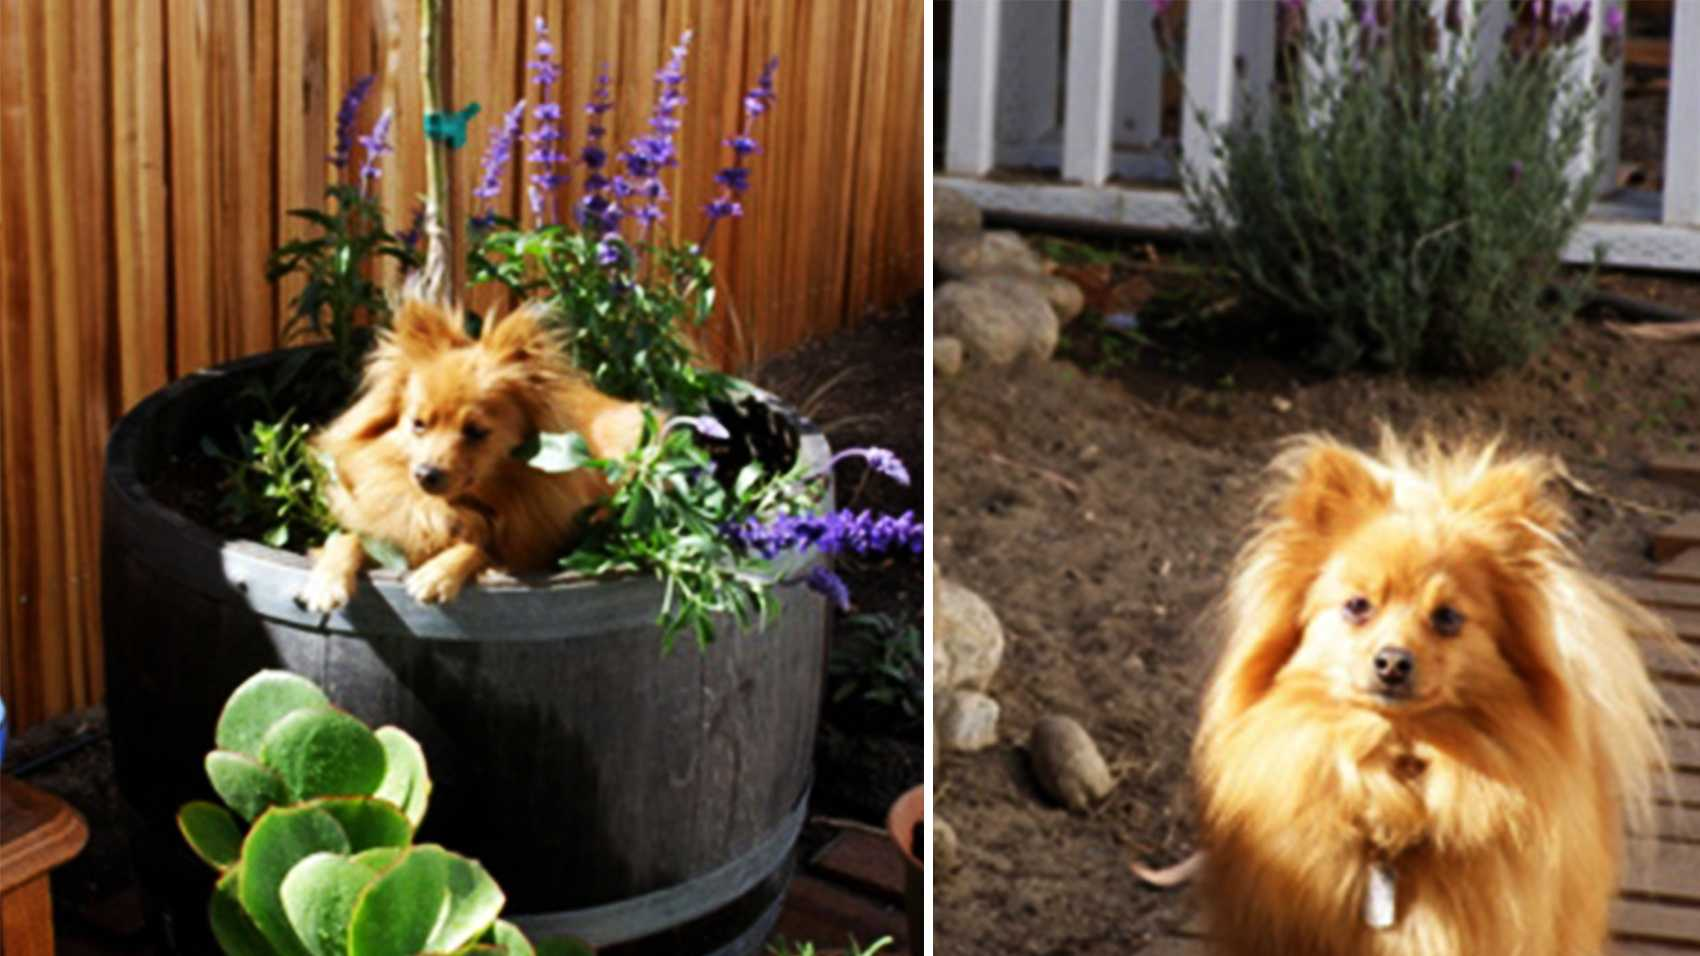 Chester the Pomeranian was shot to death in Carmel Valley.